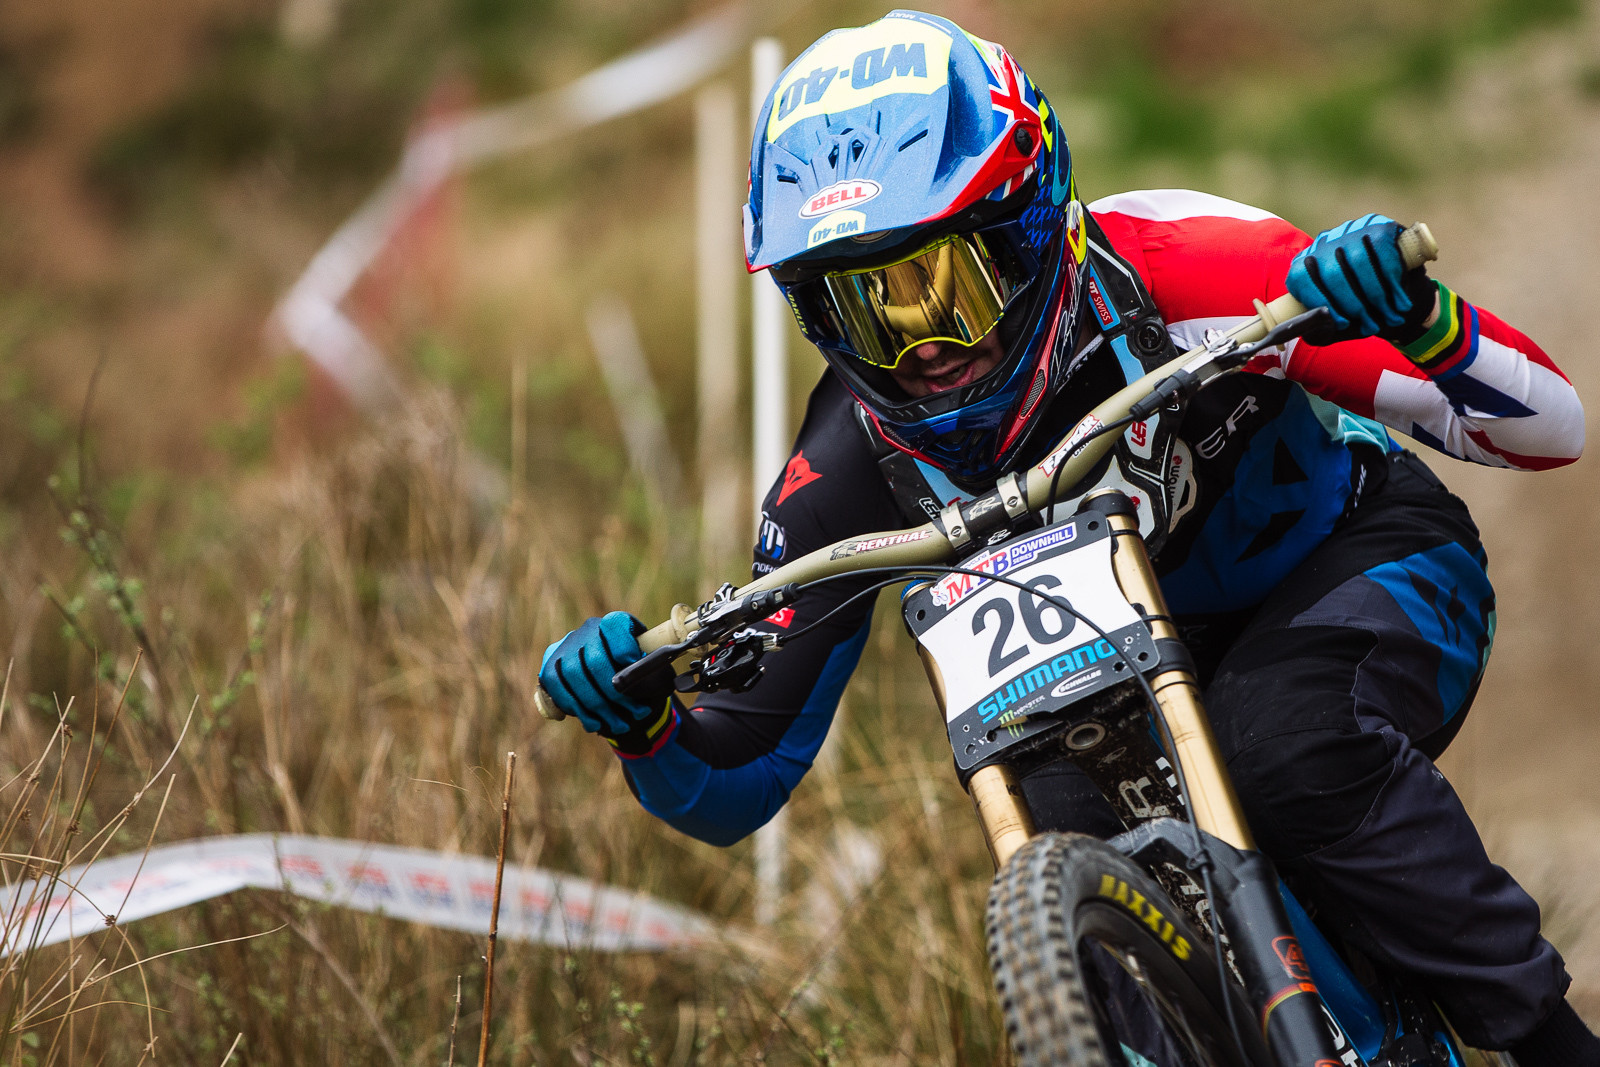 Danny Hart, Winner of the 2016 Fort William BDS - Fort William DH Action from the British Downhill Series - Mountain Biking Pictures - Vital MTB